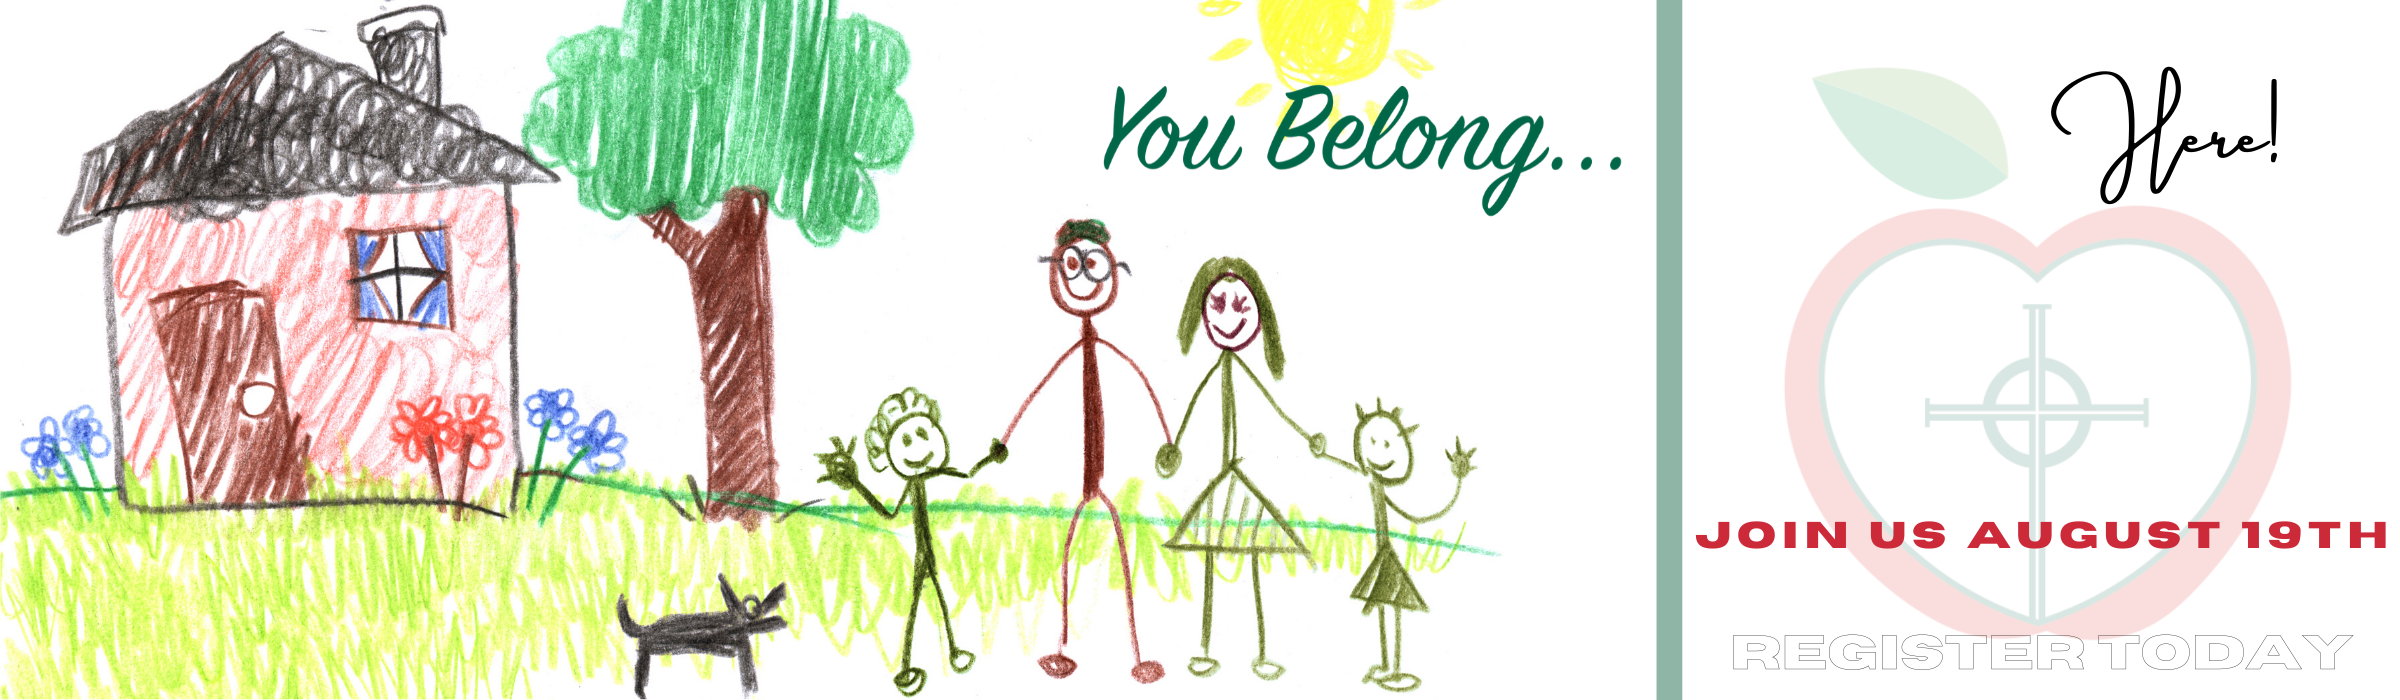 SICS New You Belong Banner July 1